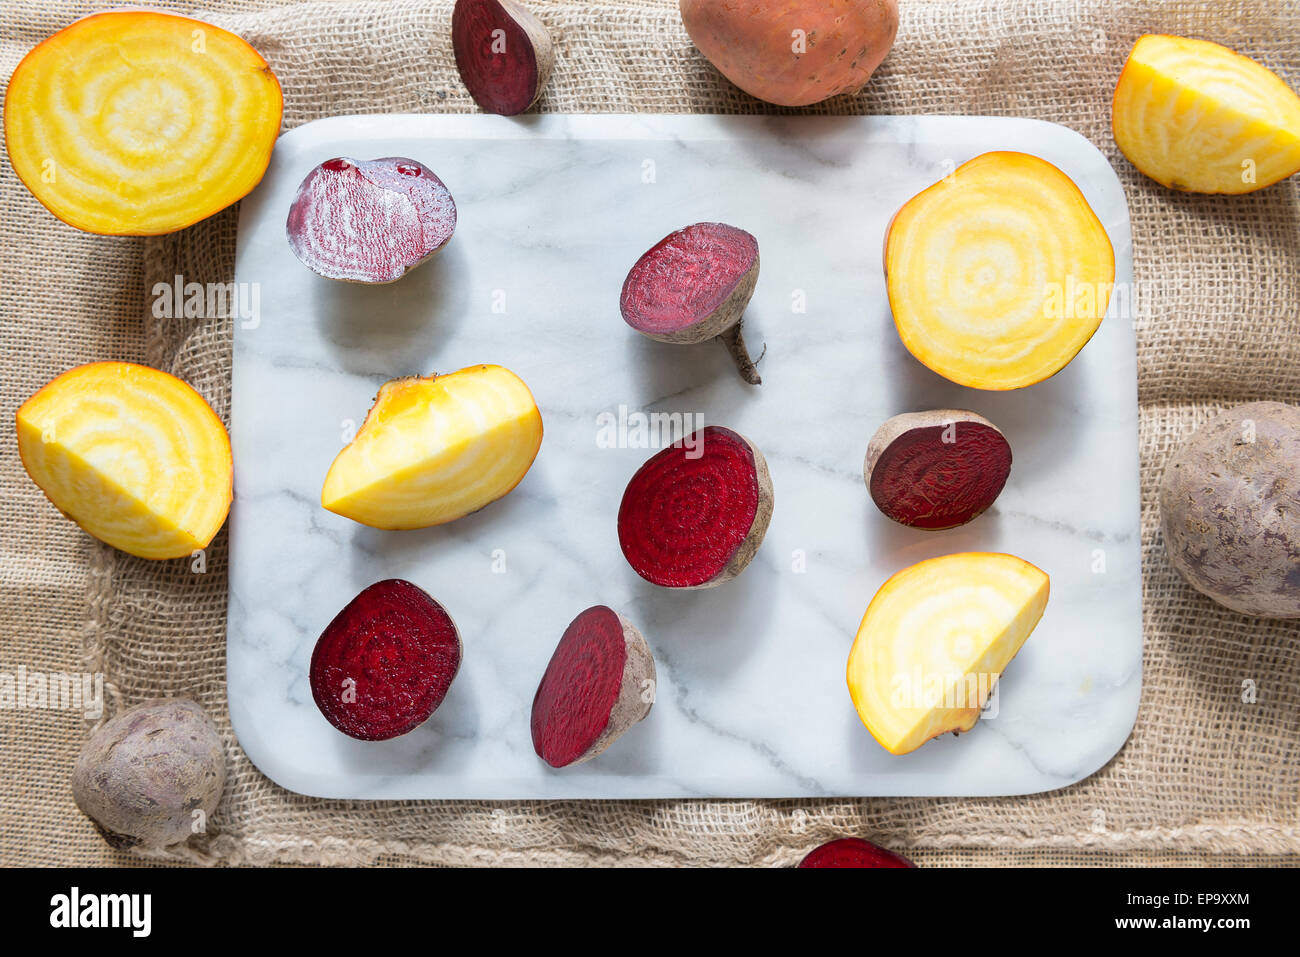 Red beetroot and golden beetroot on a marble chopping board. - Stock Image